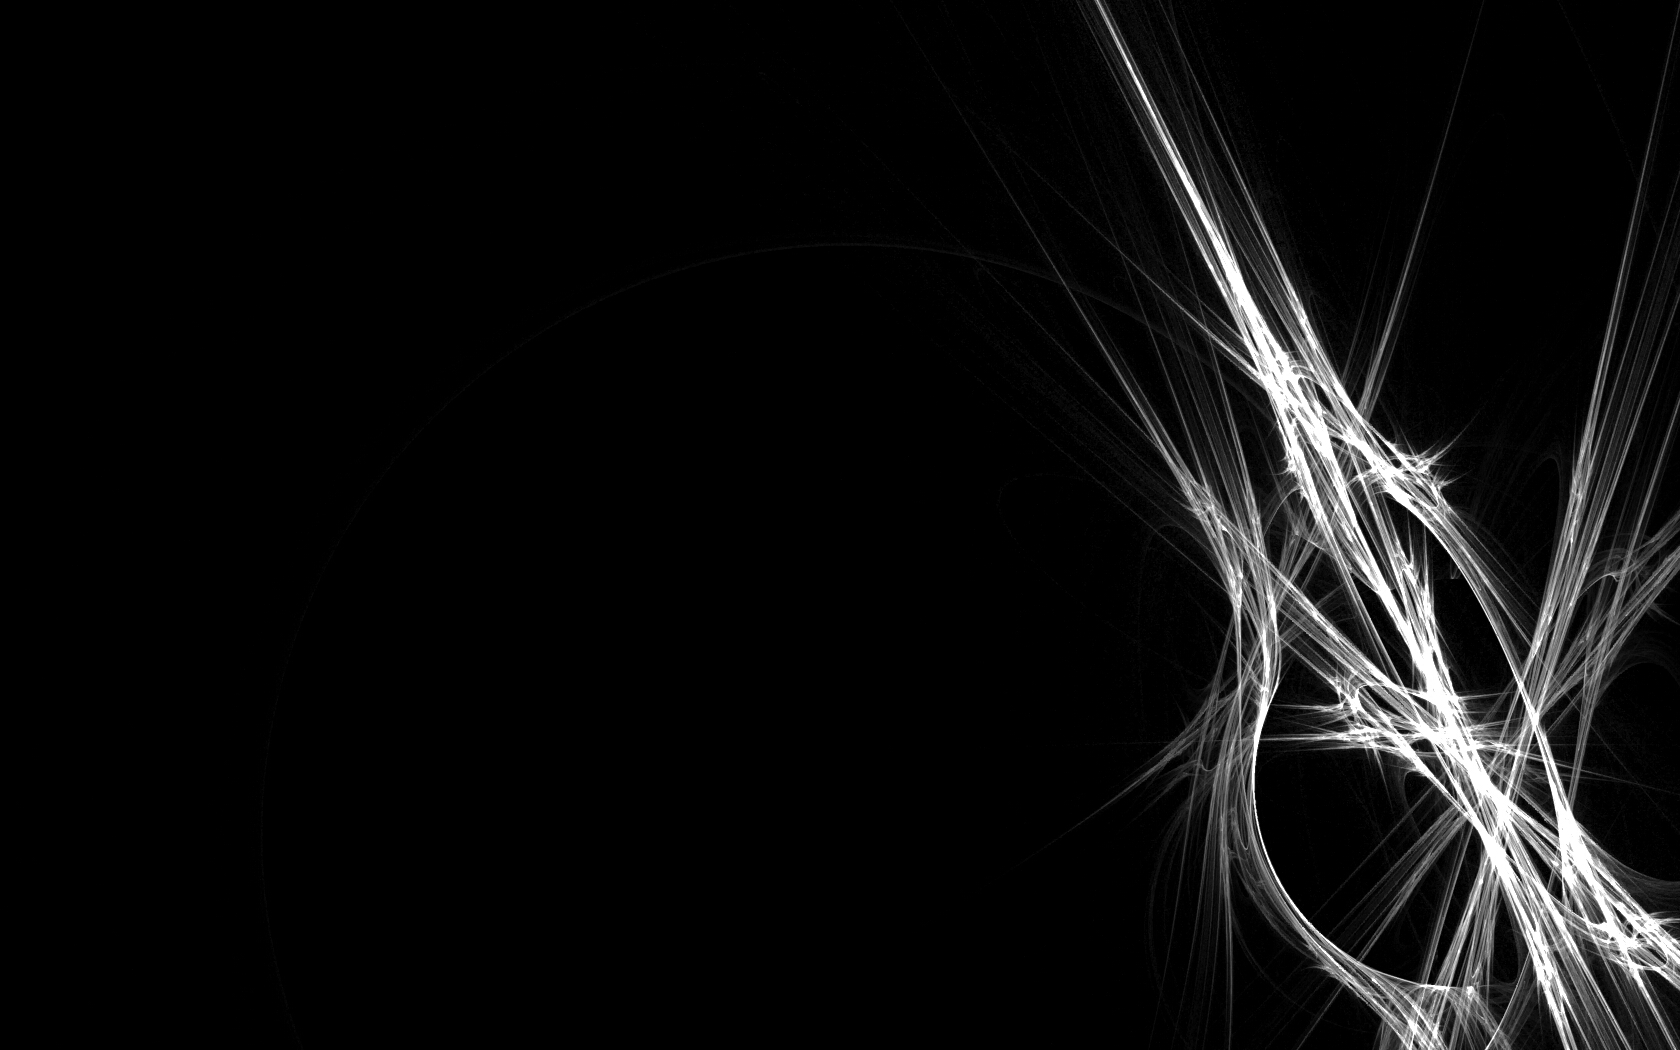 Black and white background wallpapersafari - Black and white hd wallpapers black background ...